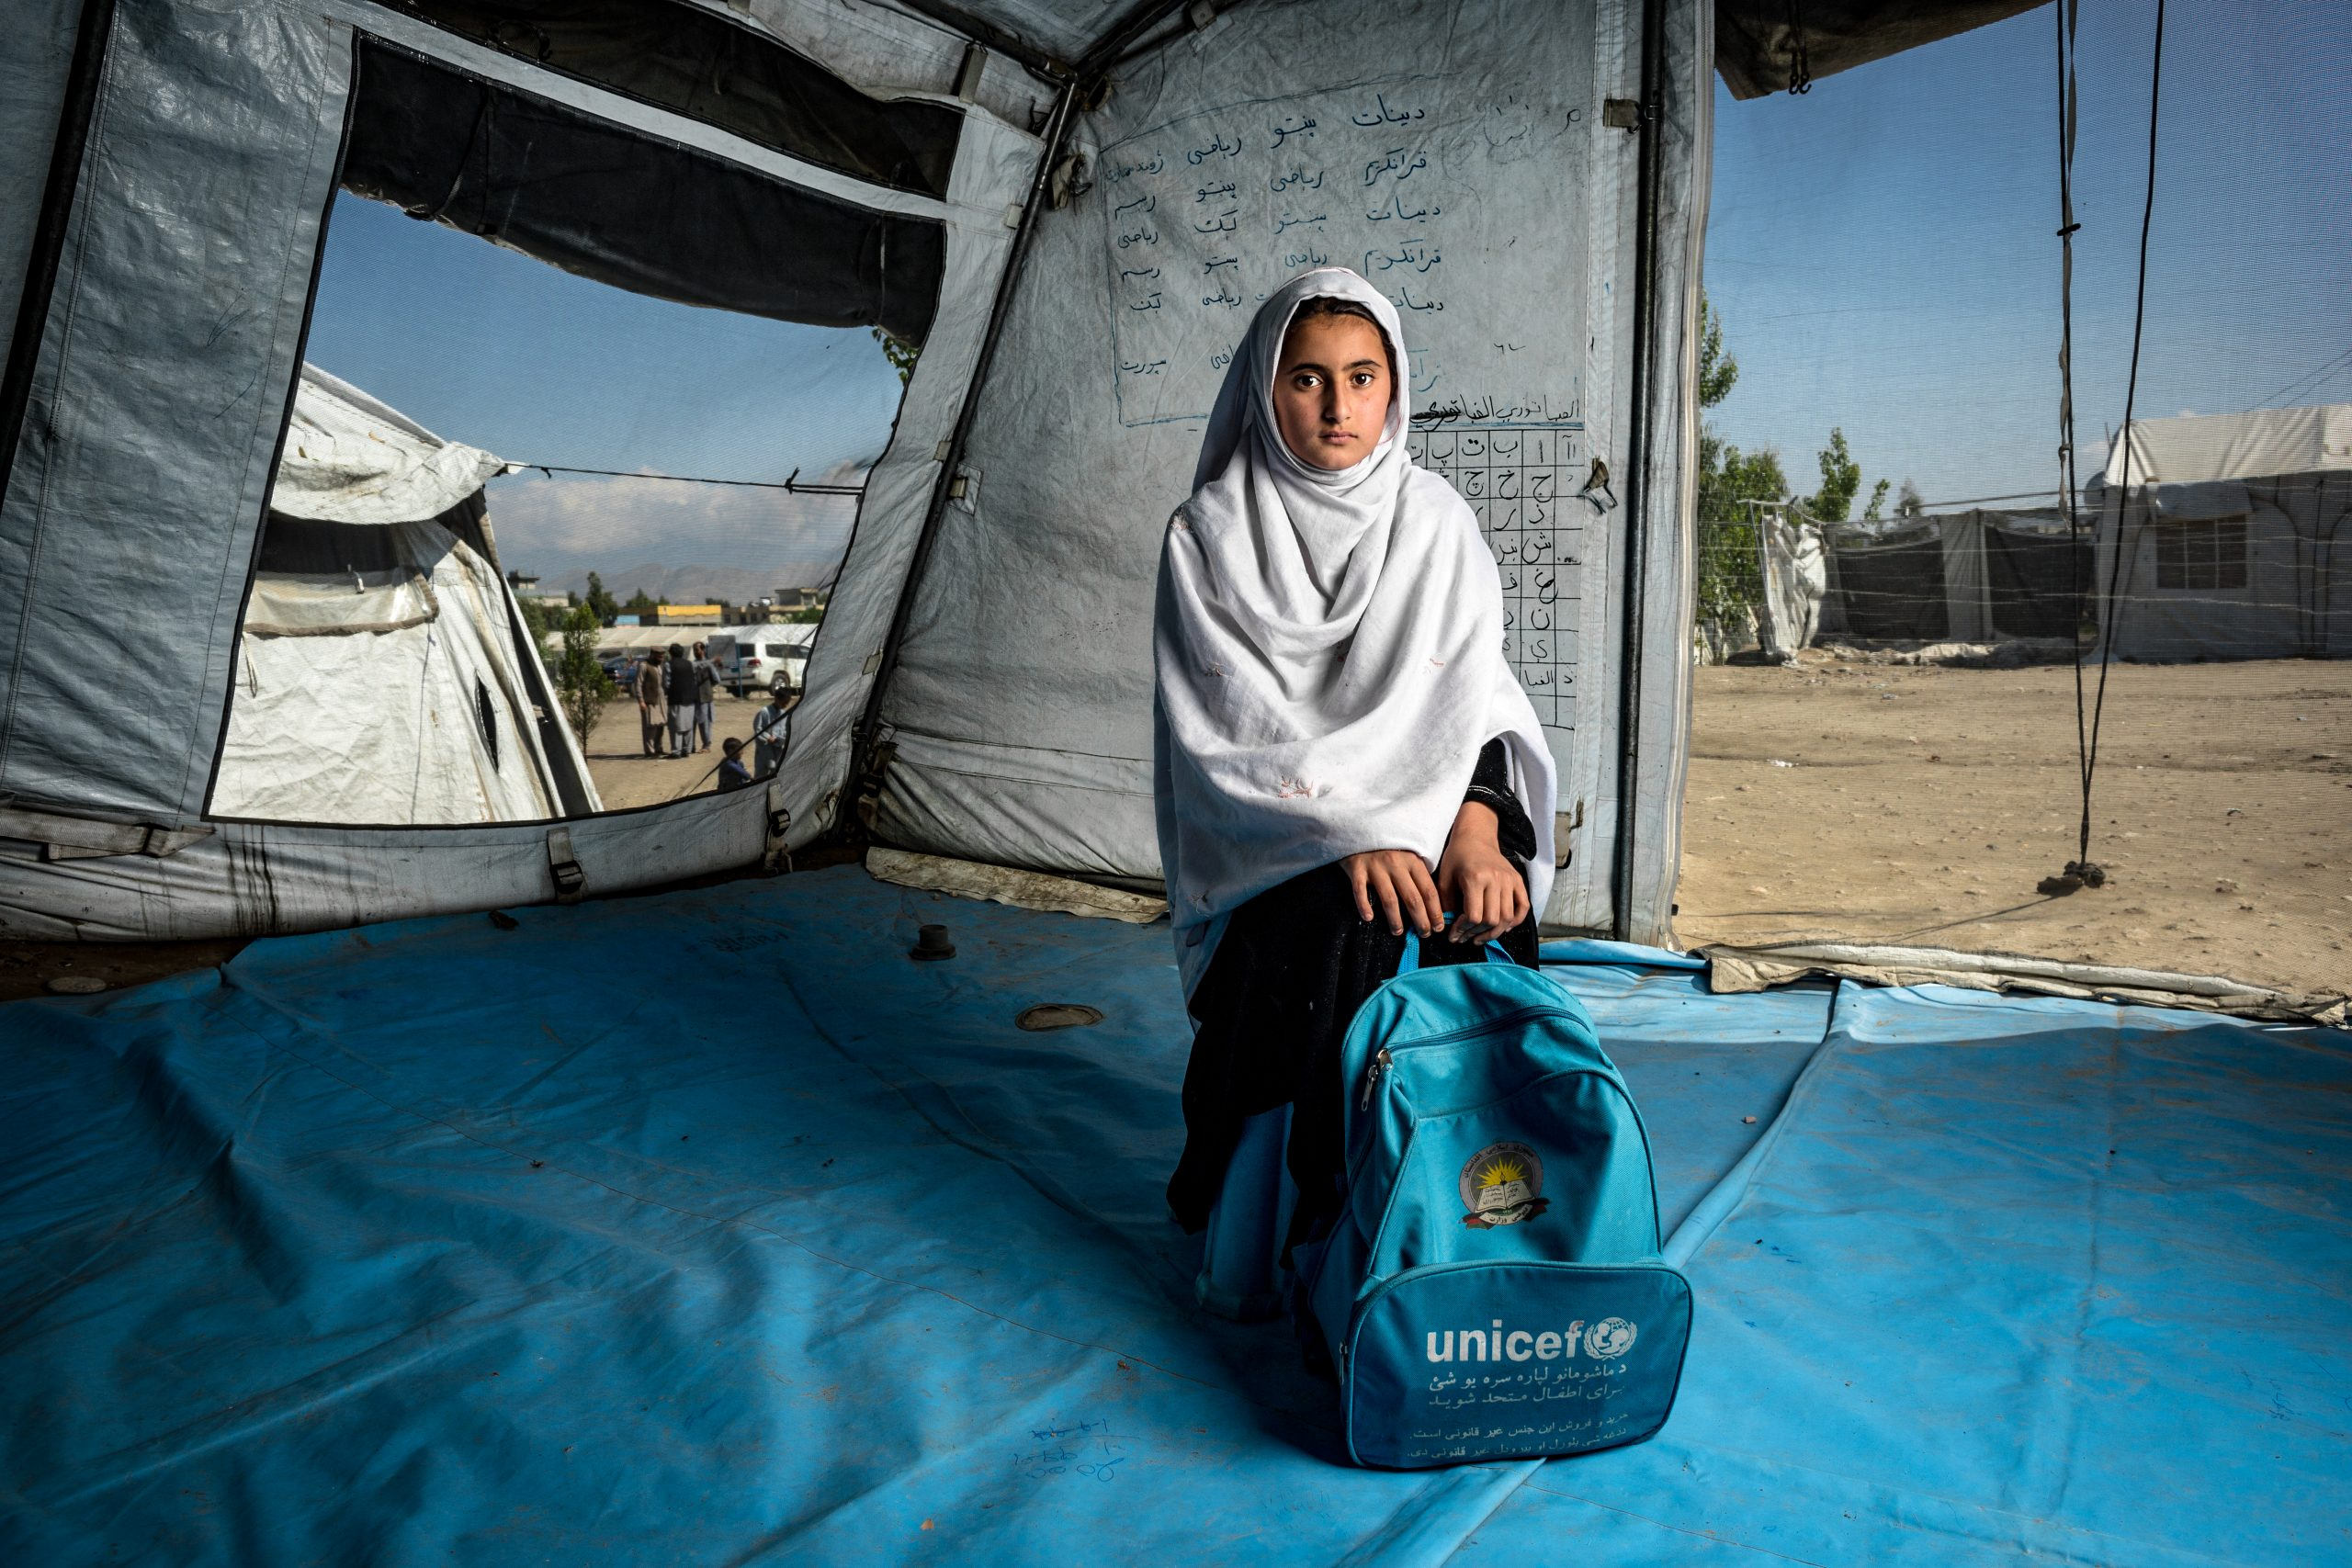 a girl is sitting in an UNICEF tent holding an UNICEF backpack